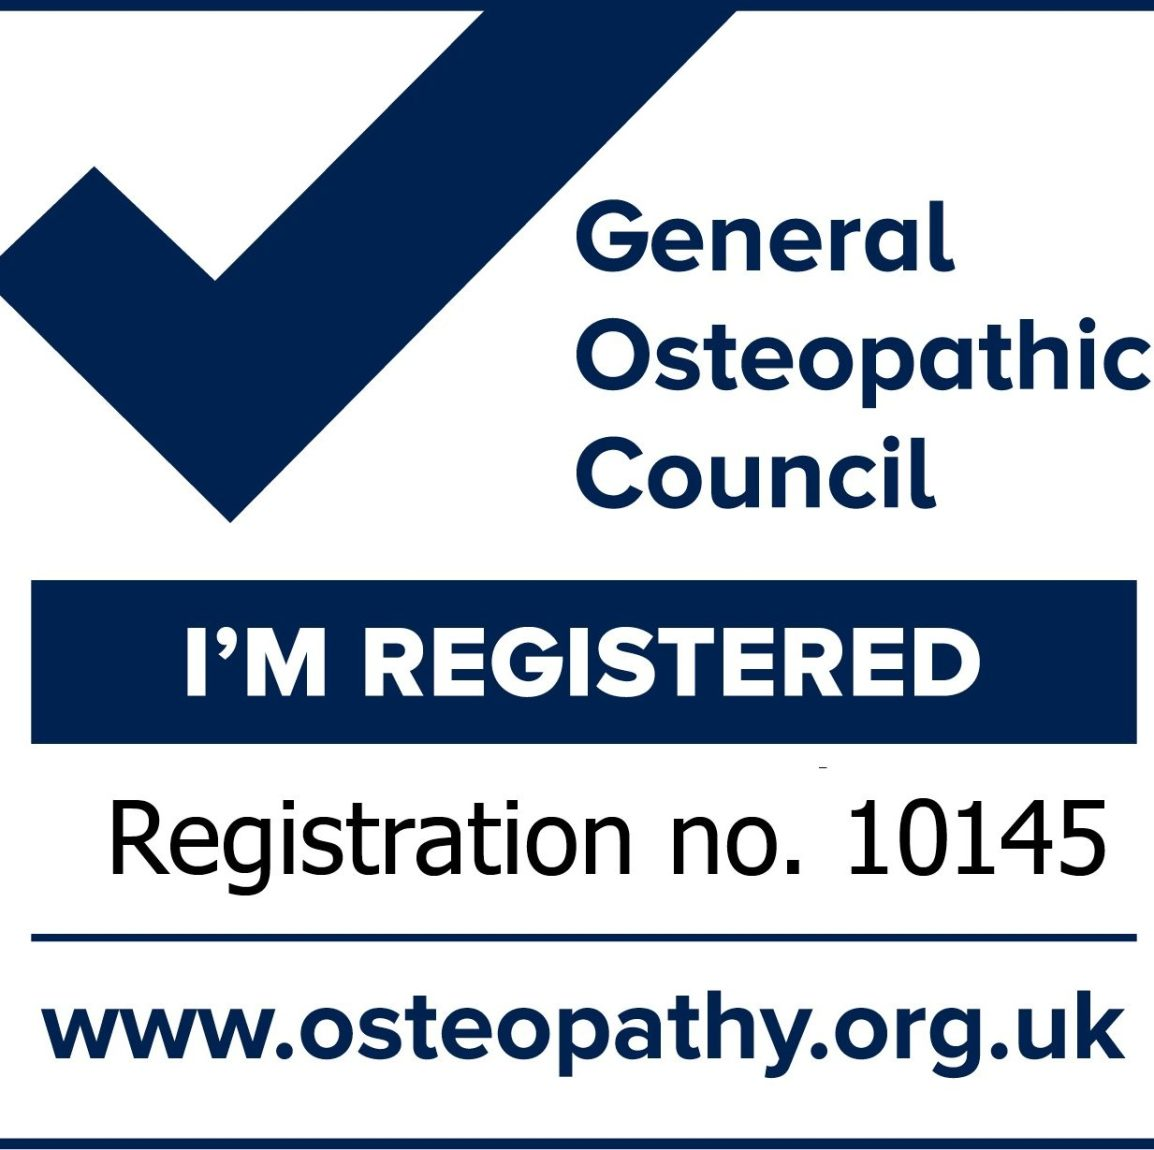 General Osteopathic Council - Registration - The Tilsworth Clinic